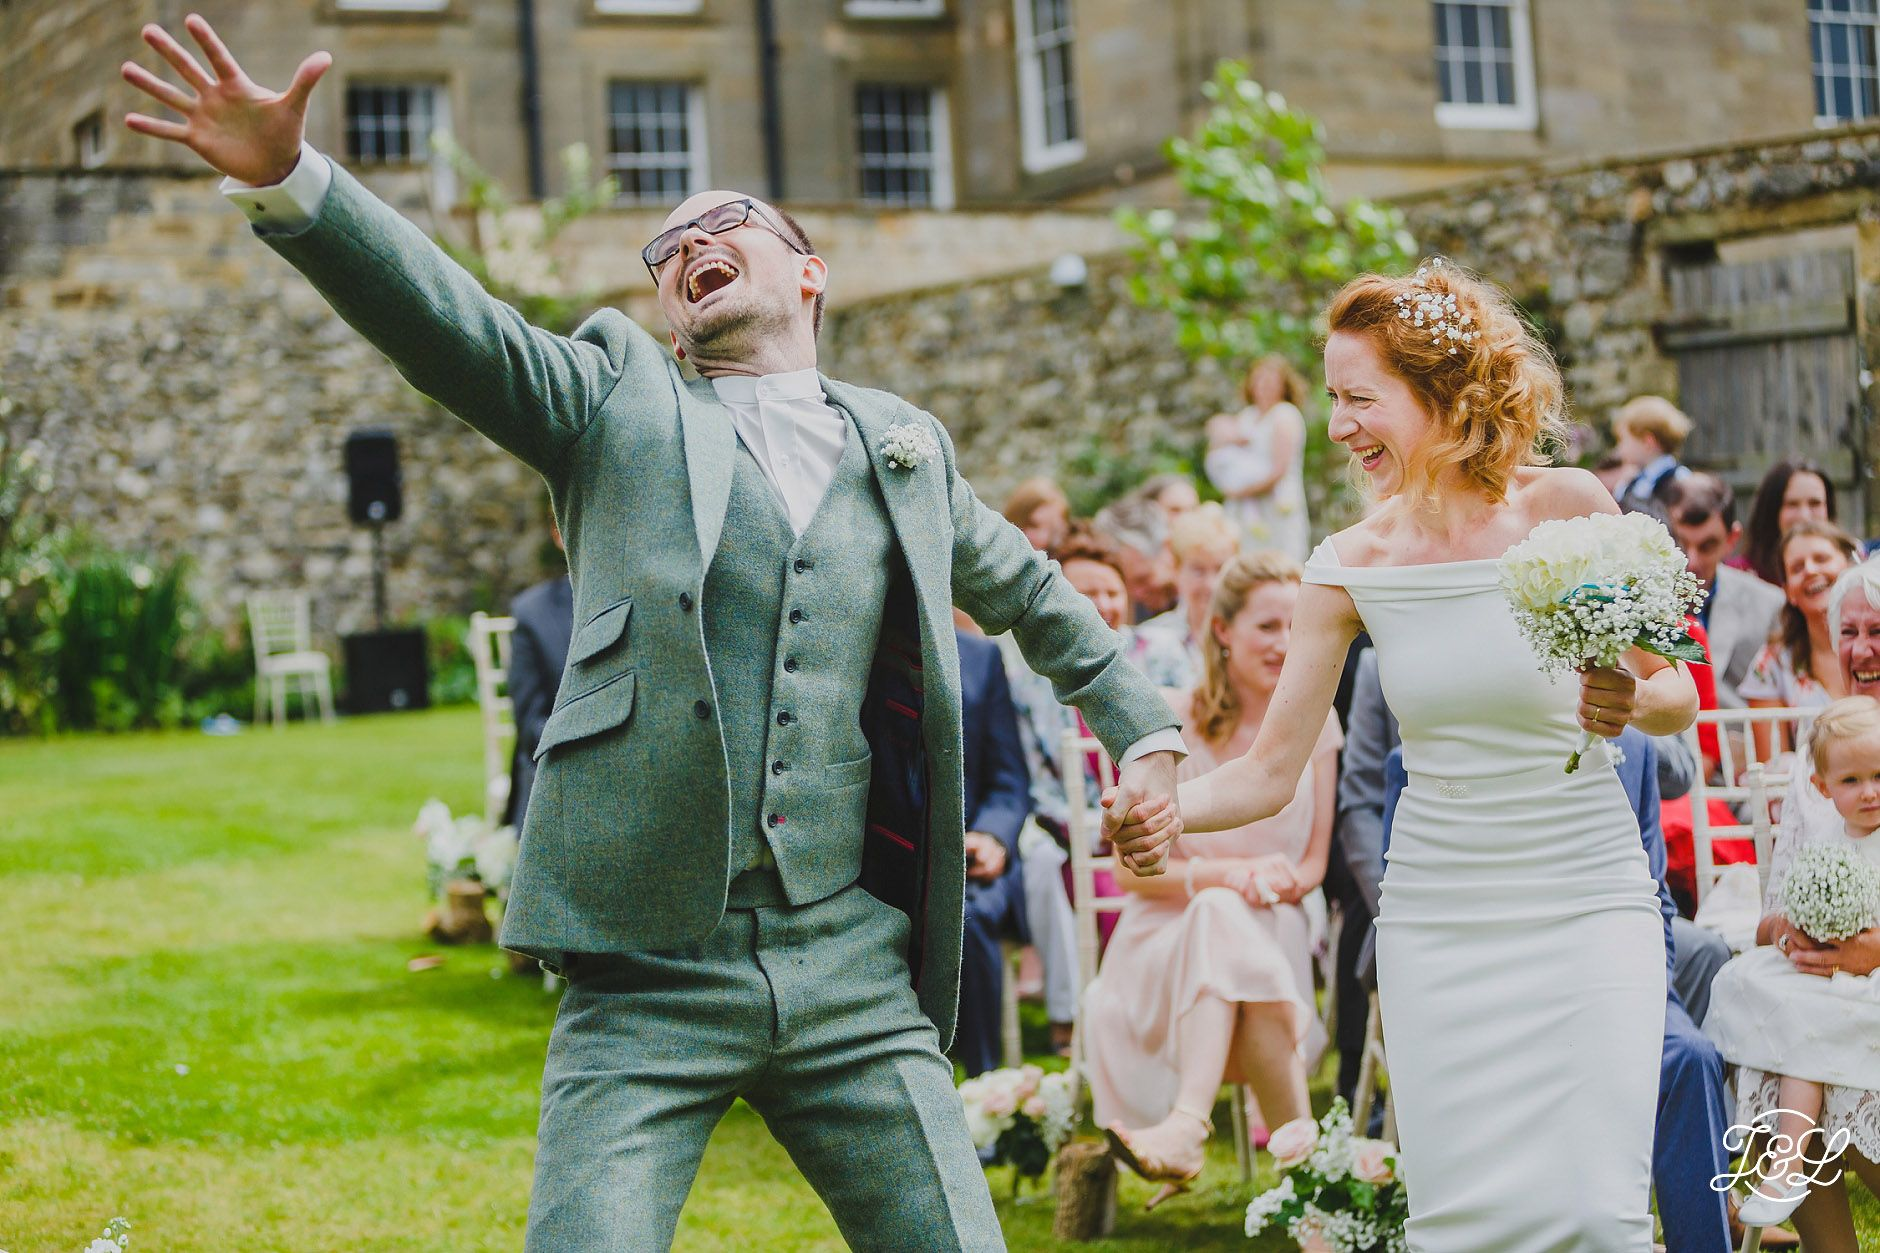 Yorkshire outdoor humanist wedding in Settle. Bride and ...